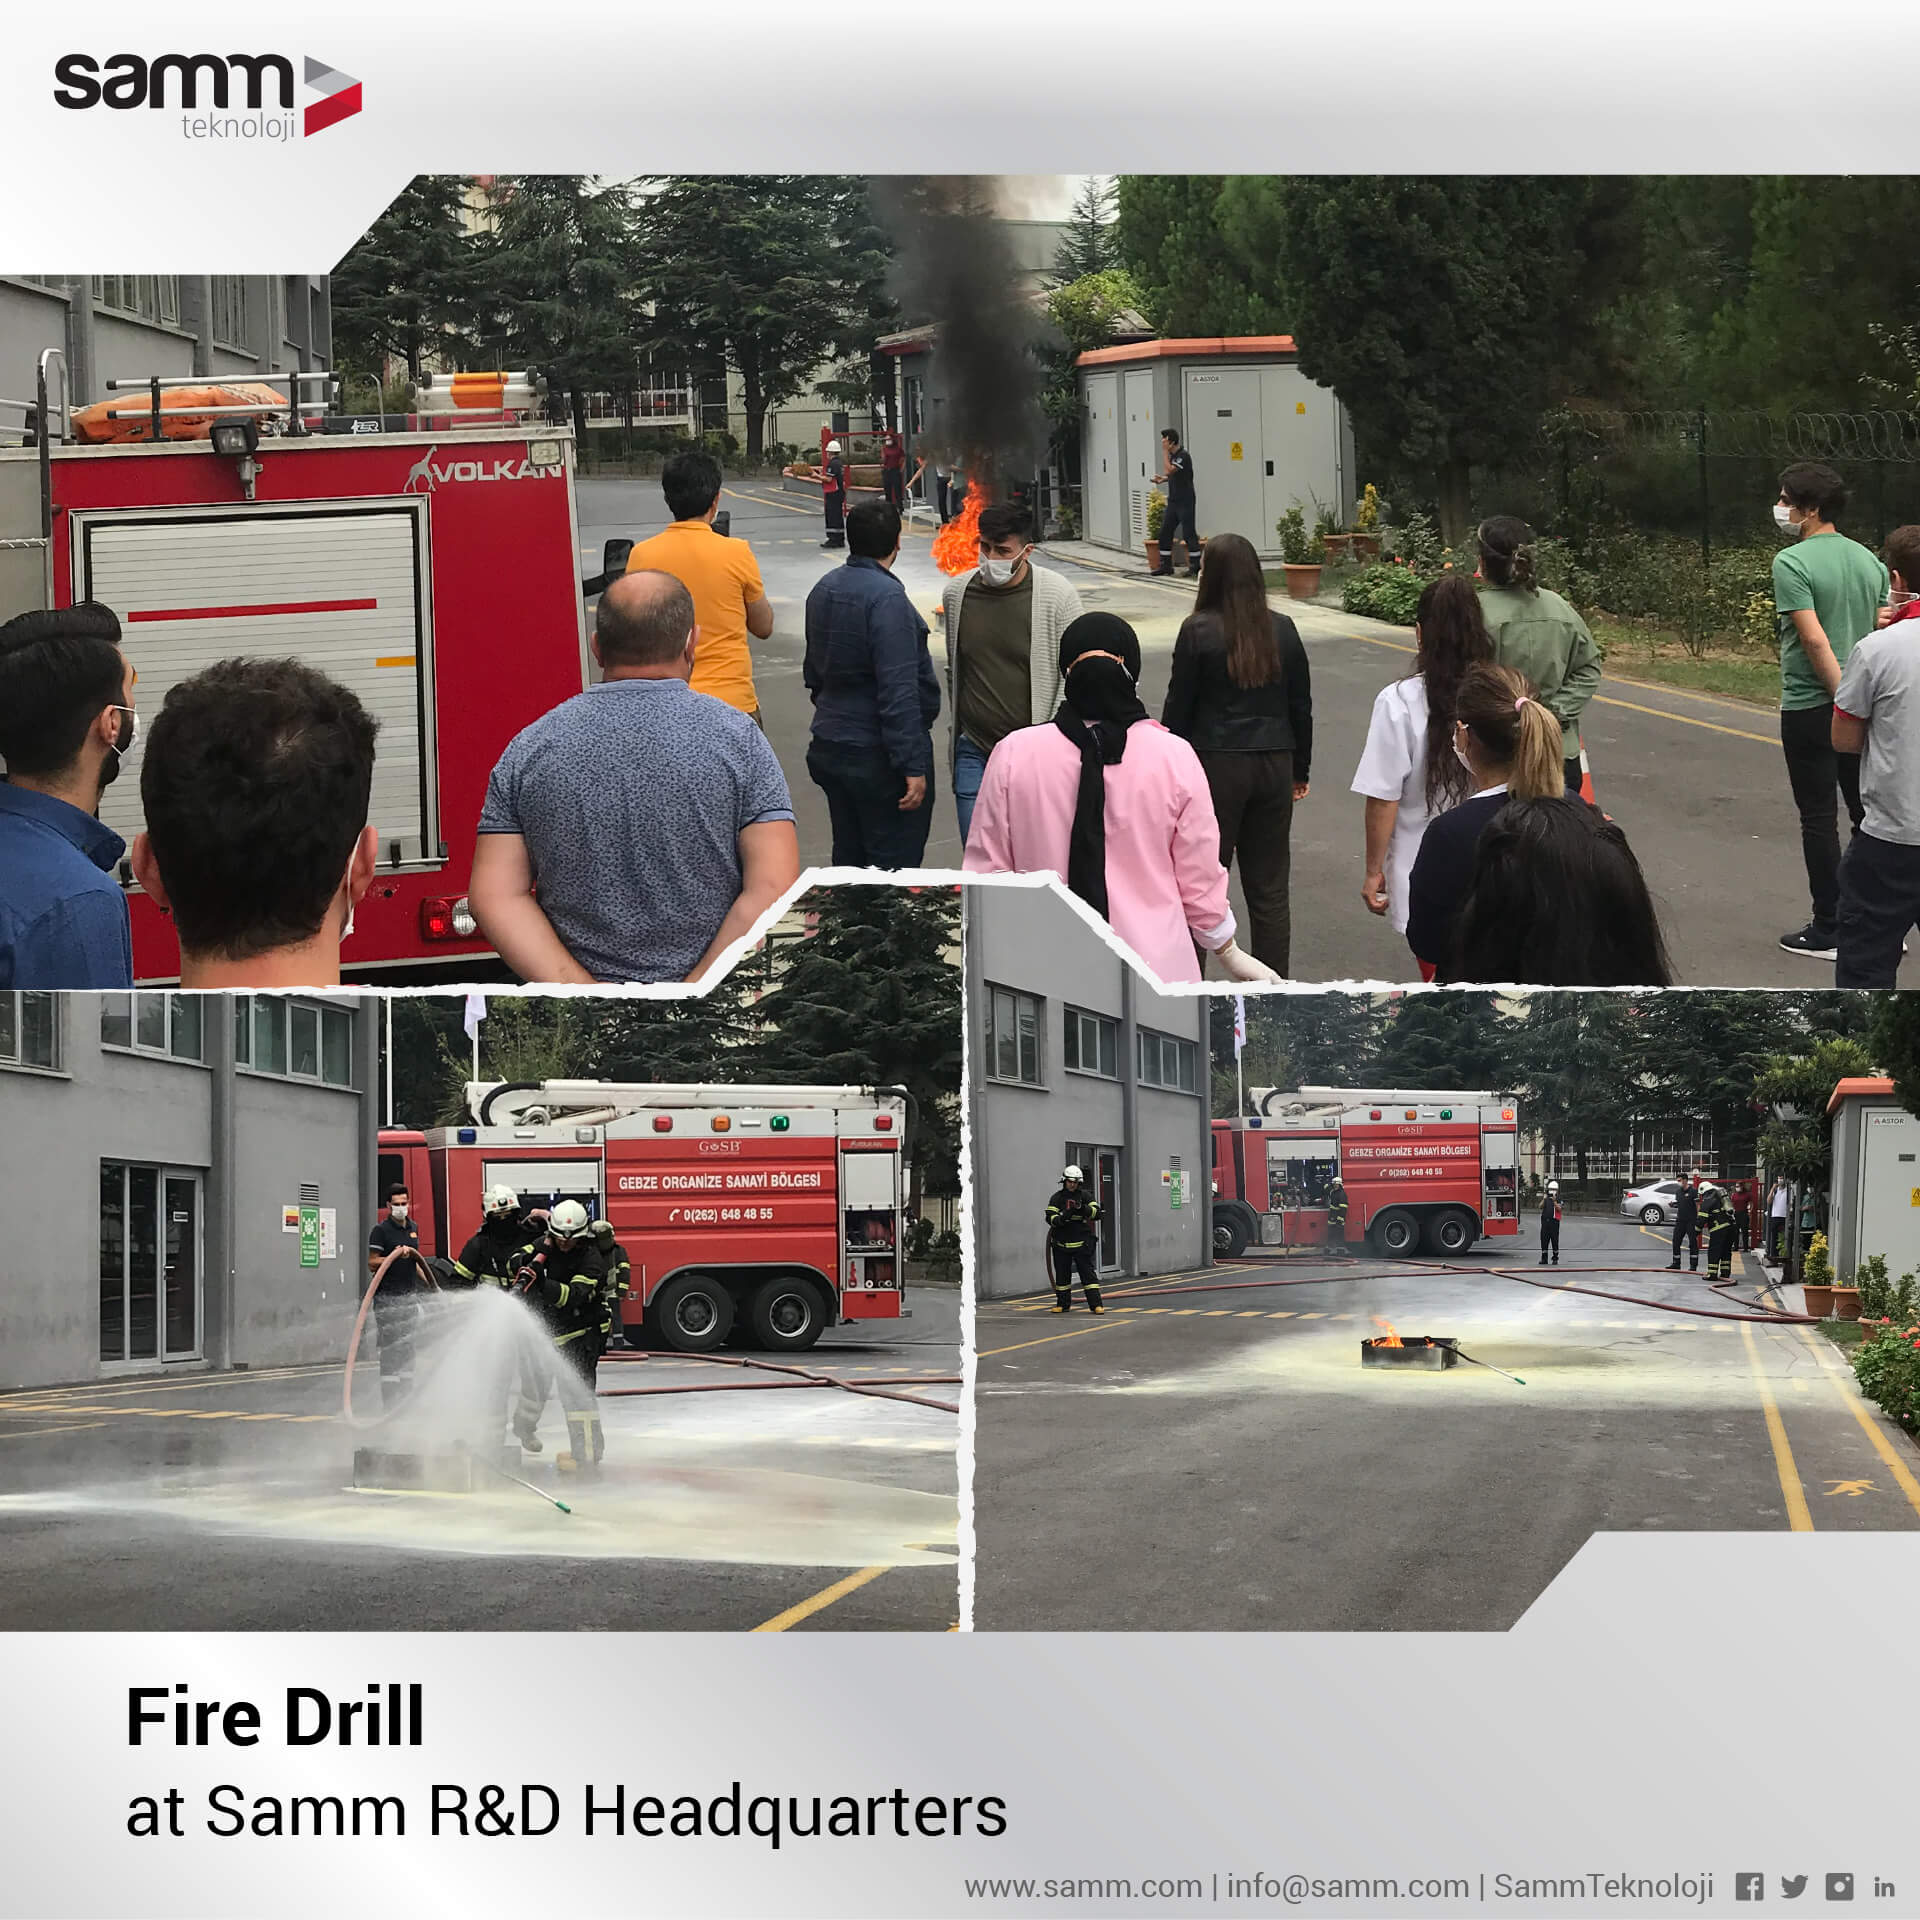 Fire Drill at Samm R&D Headquarters